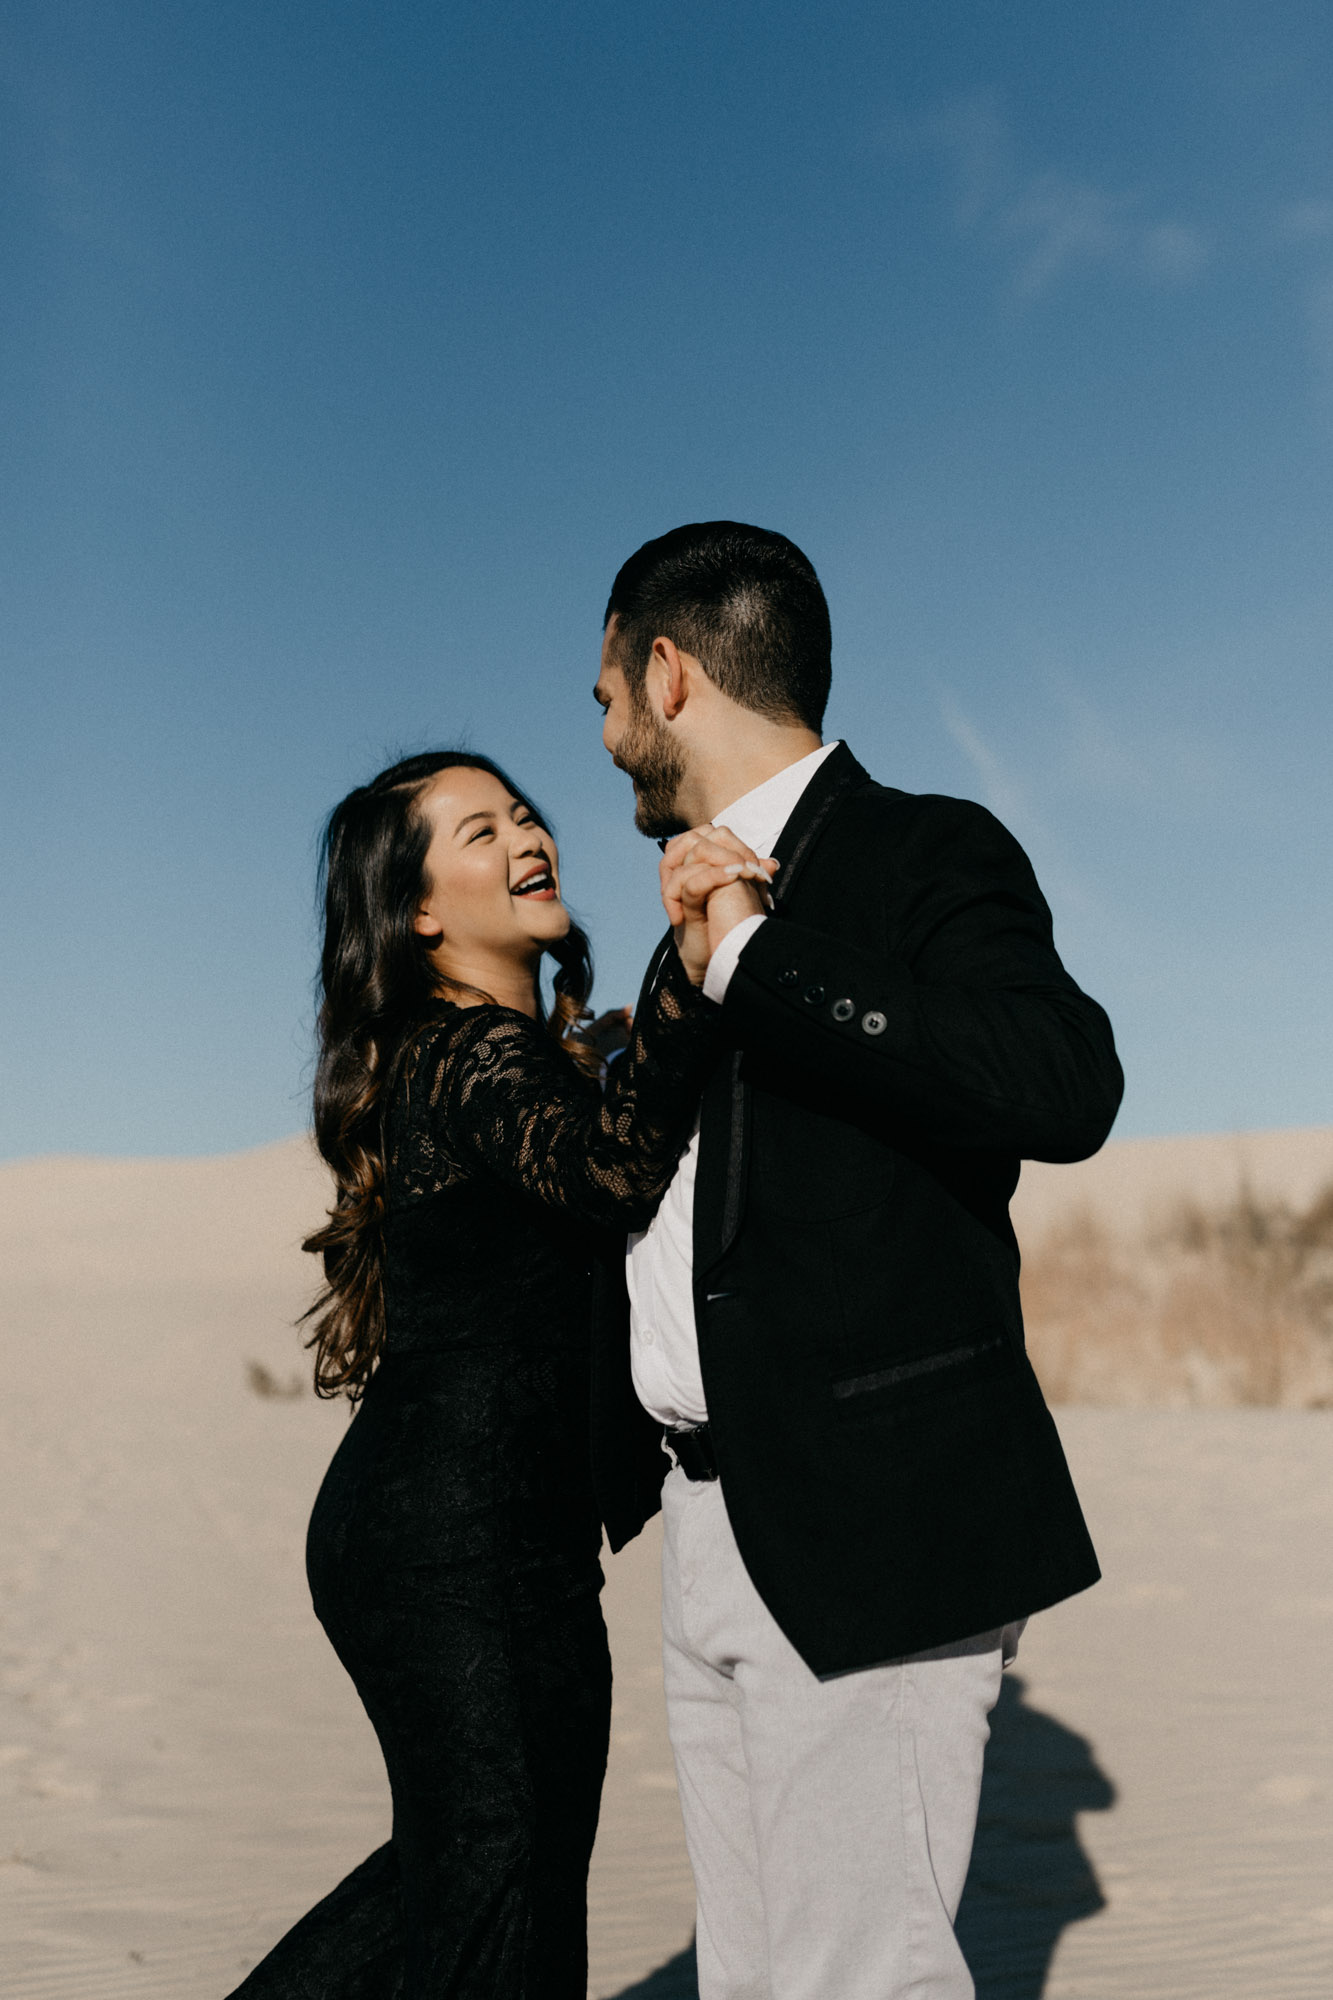 Engaged couple being playful at sand hills during their engagement session